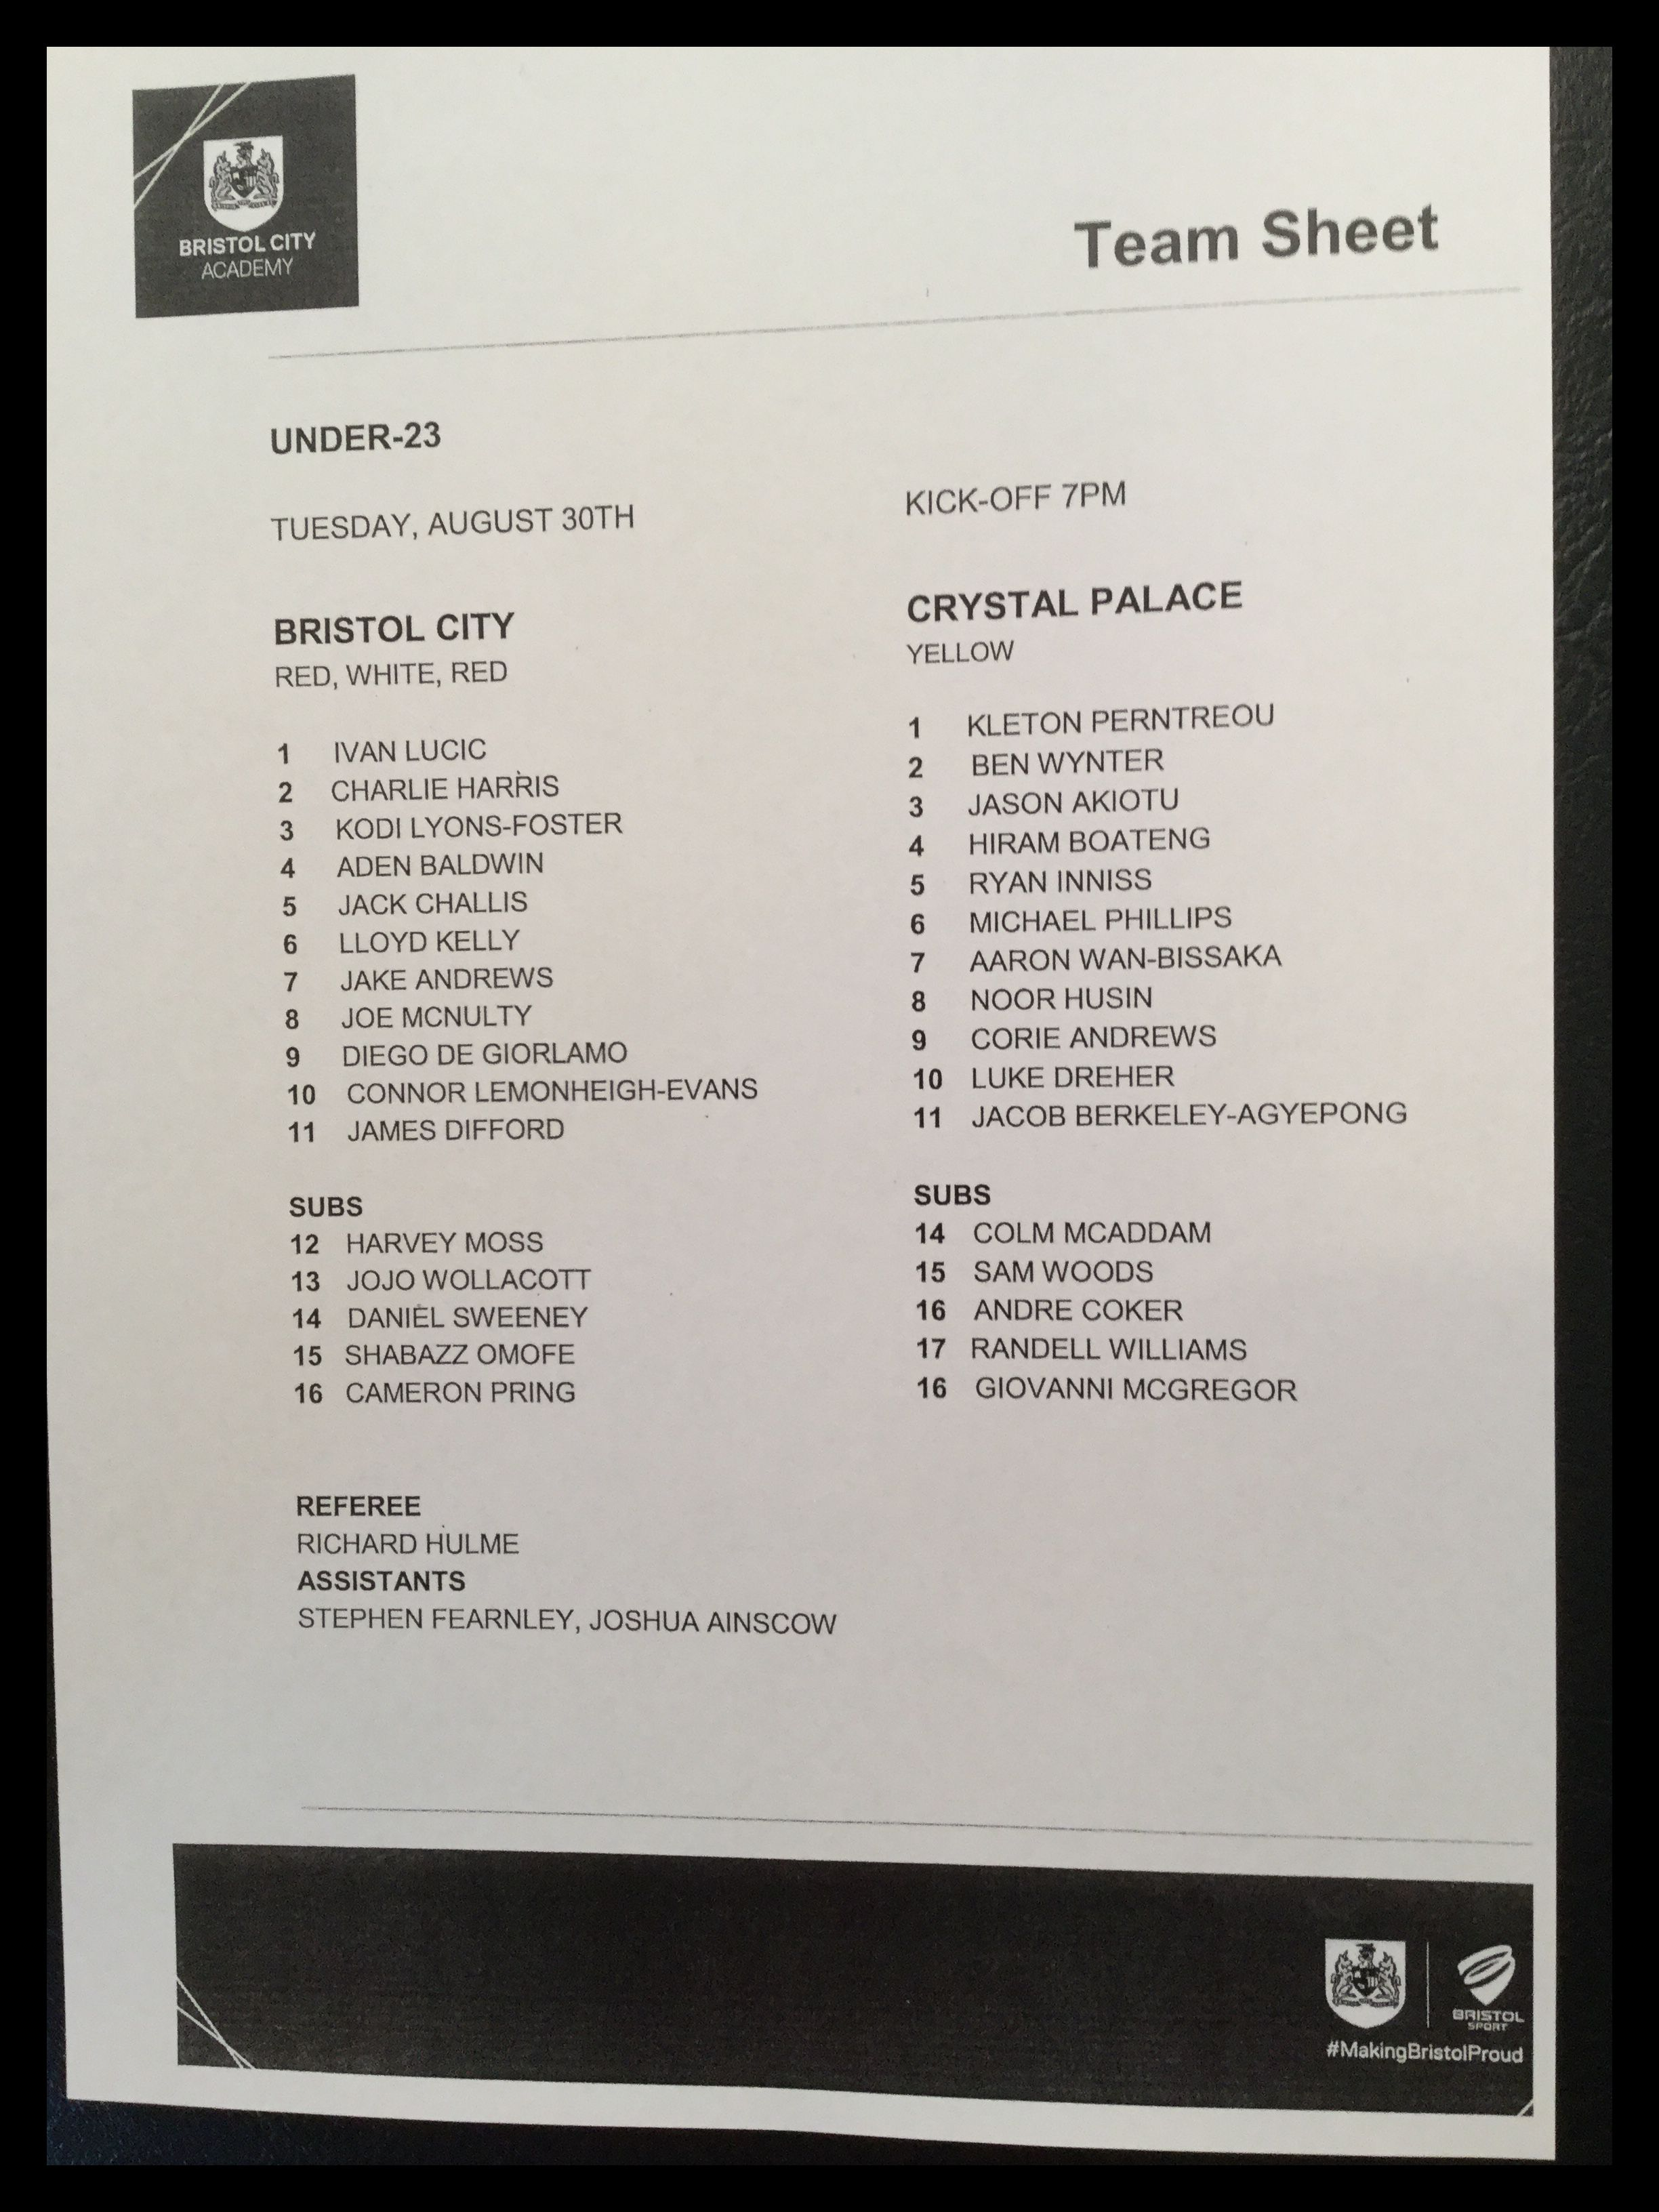 Bristol City v Crystal Palace 30-08-16 Team Sheet